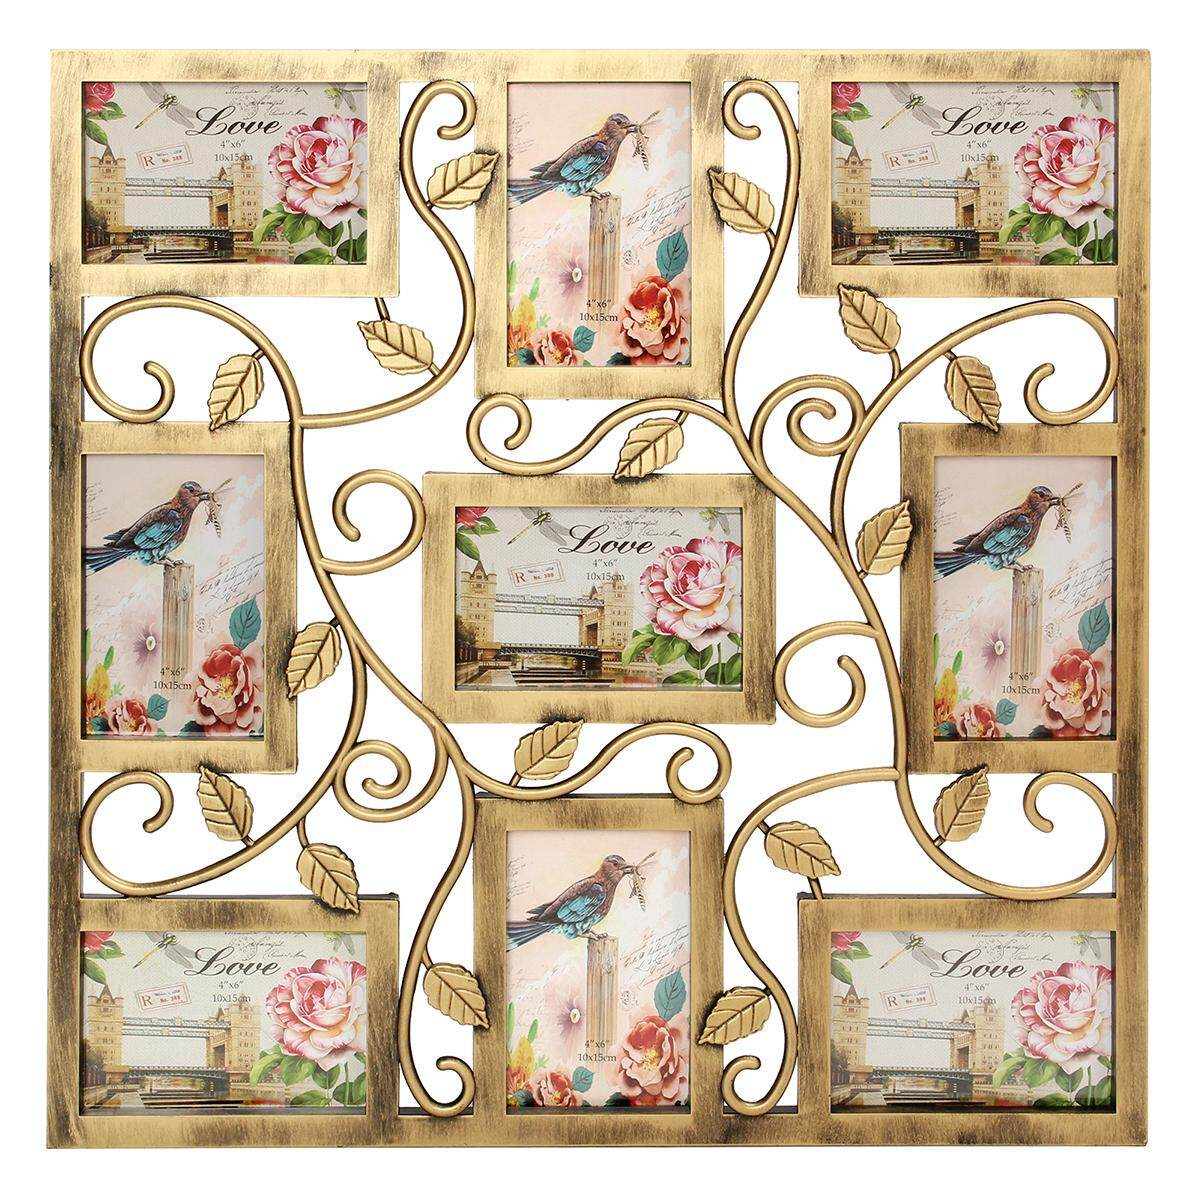 Wall Hanging Bronze Floral Vine Collage Photo Frames Picture Display Decor Gift#=